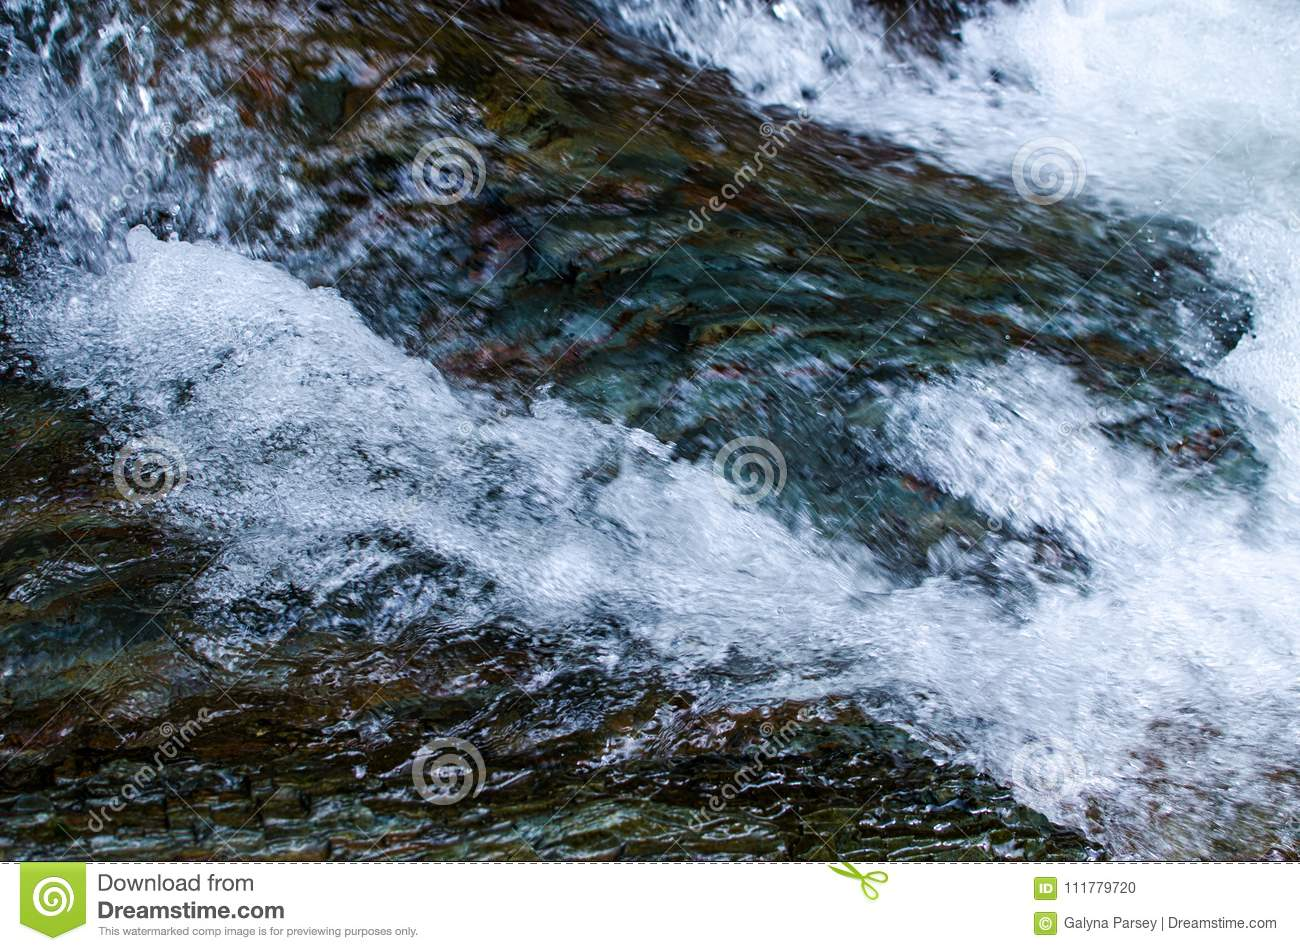 A stream in the mountains flows along the rocks and a stormy waterfall